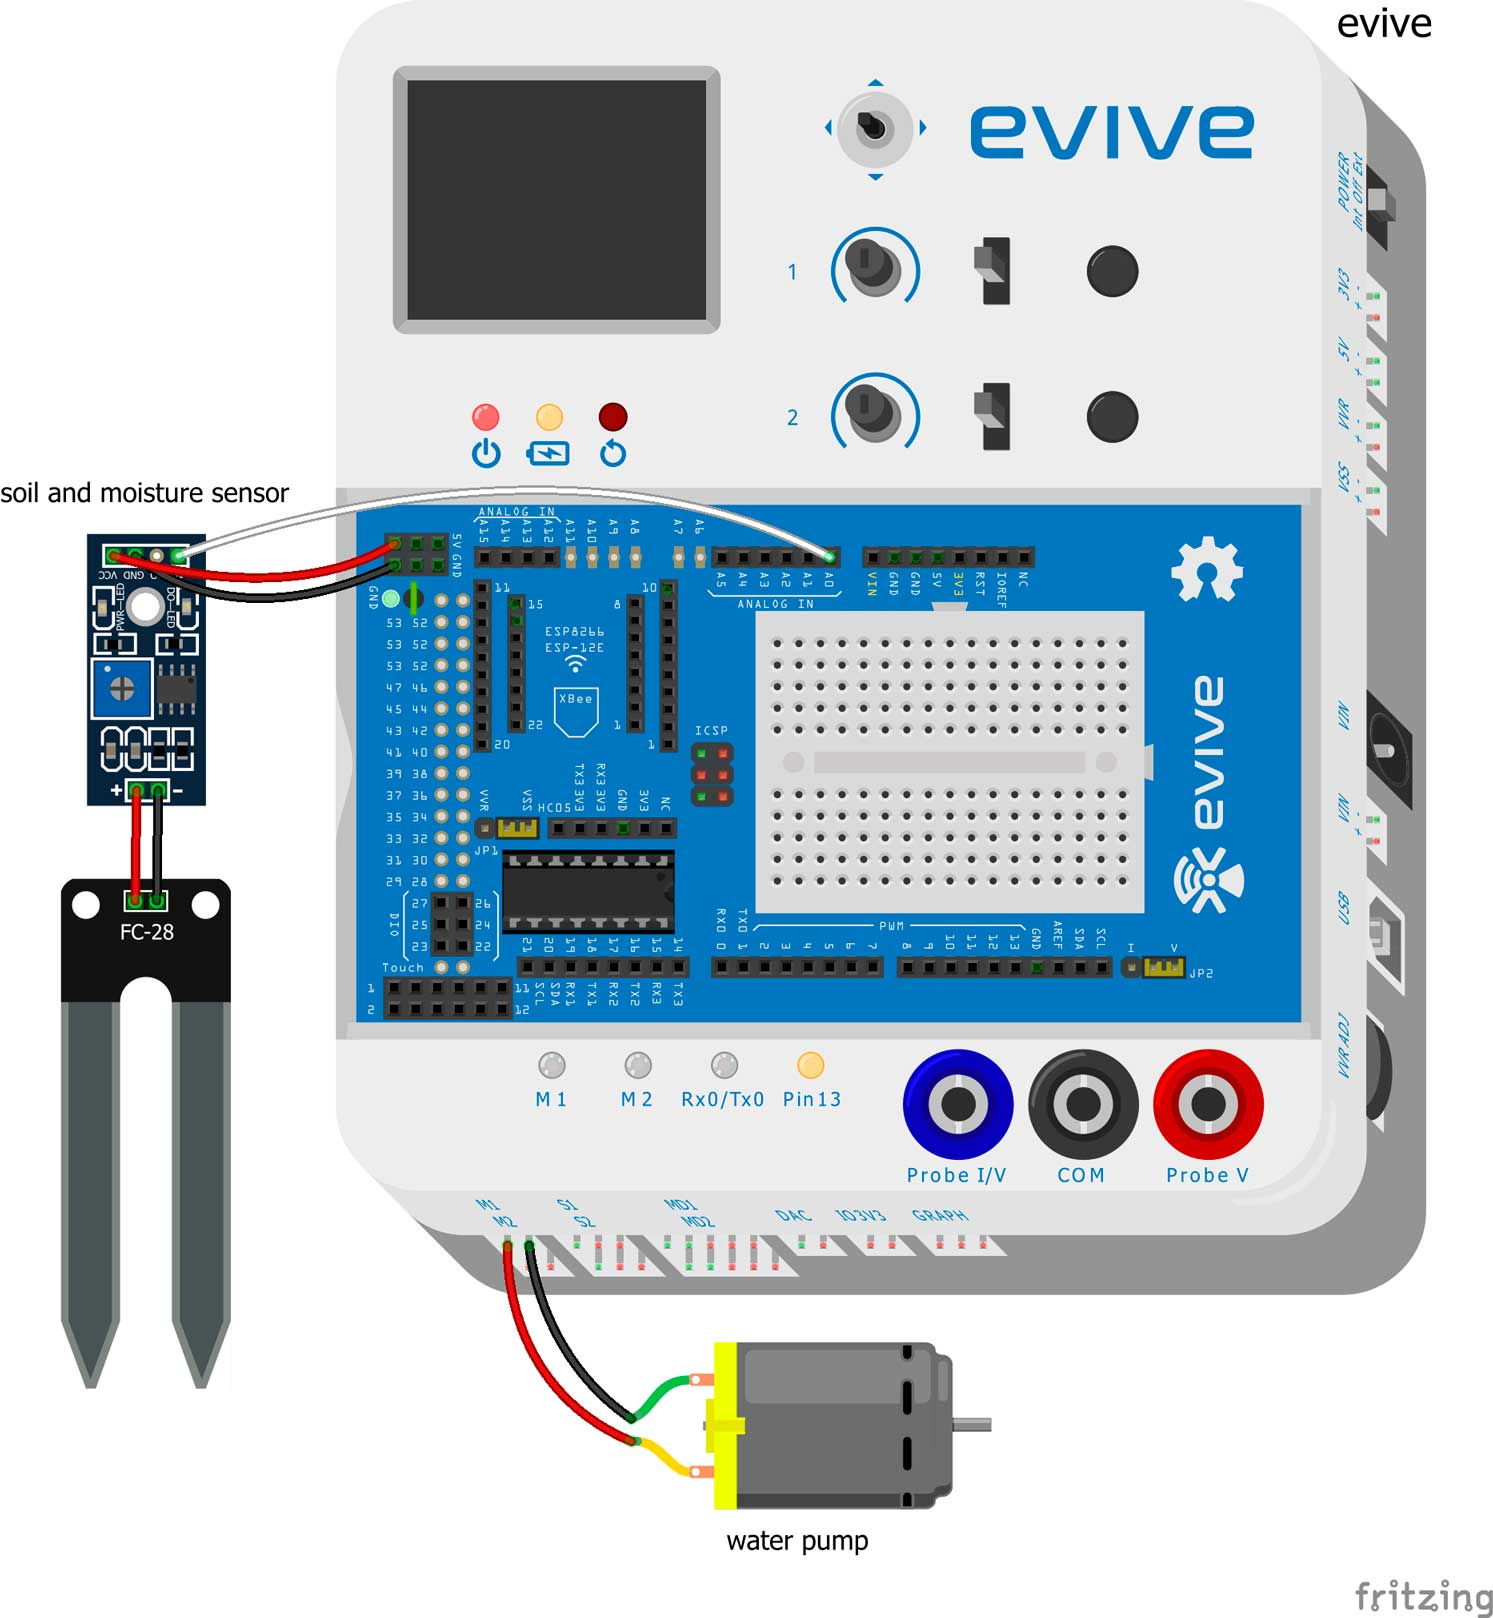 DIY Automatic Plant Watering System for Aagriculture Using Arduino on plant circulation system, plant water system, plant pulley mechanism, plant systems science, plant growing system, plant greenhouse, plant sprinkler system, magnetic plant wall system, the plant system, plant misting system, plant root system, plant digestive system, plant plants, plant feeding system, plant shade, plant training system, plant reproductive system, plant vascular system, plant immune system, plant irrigation,